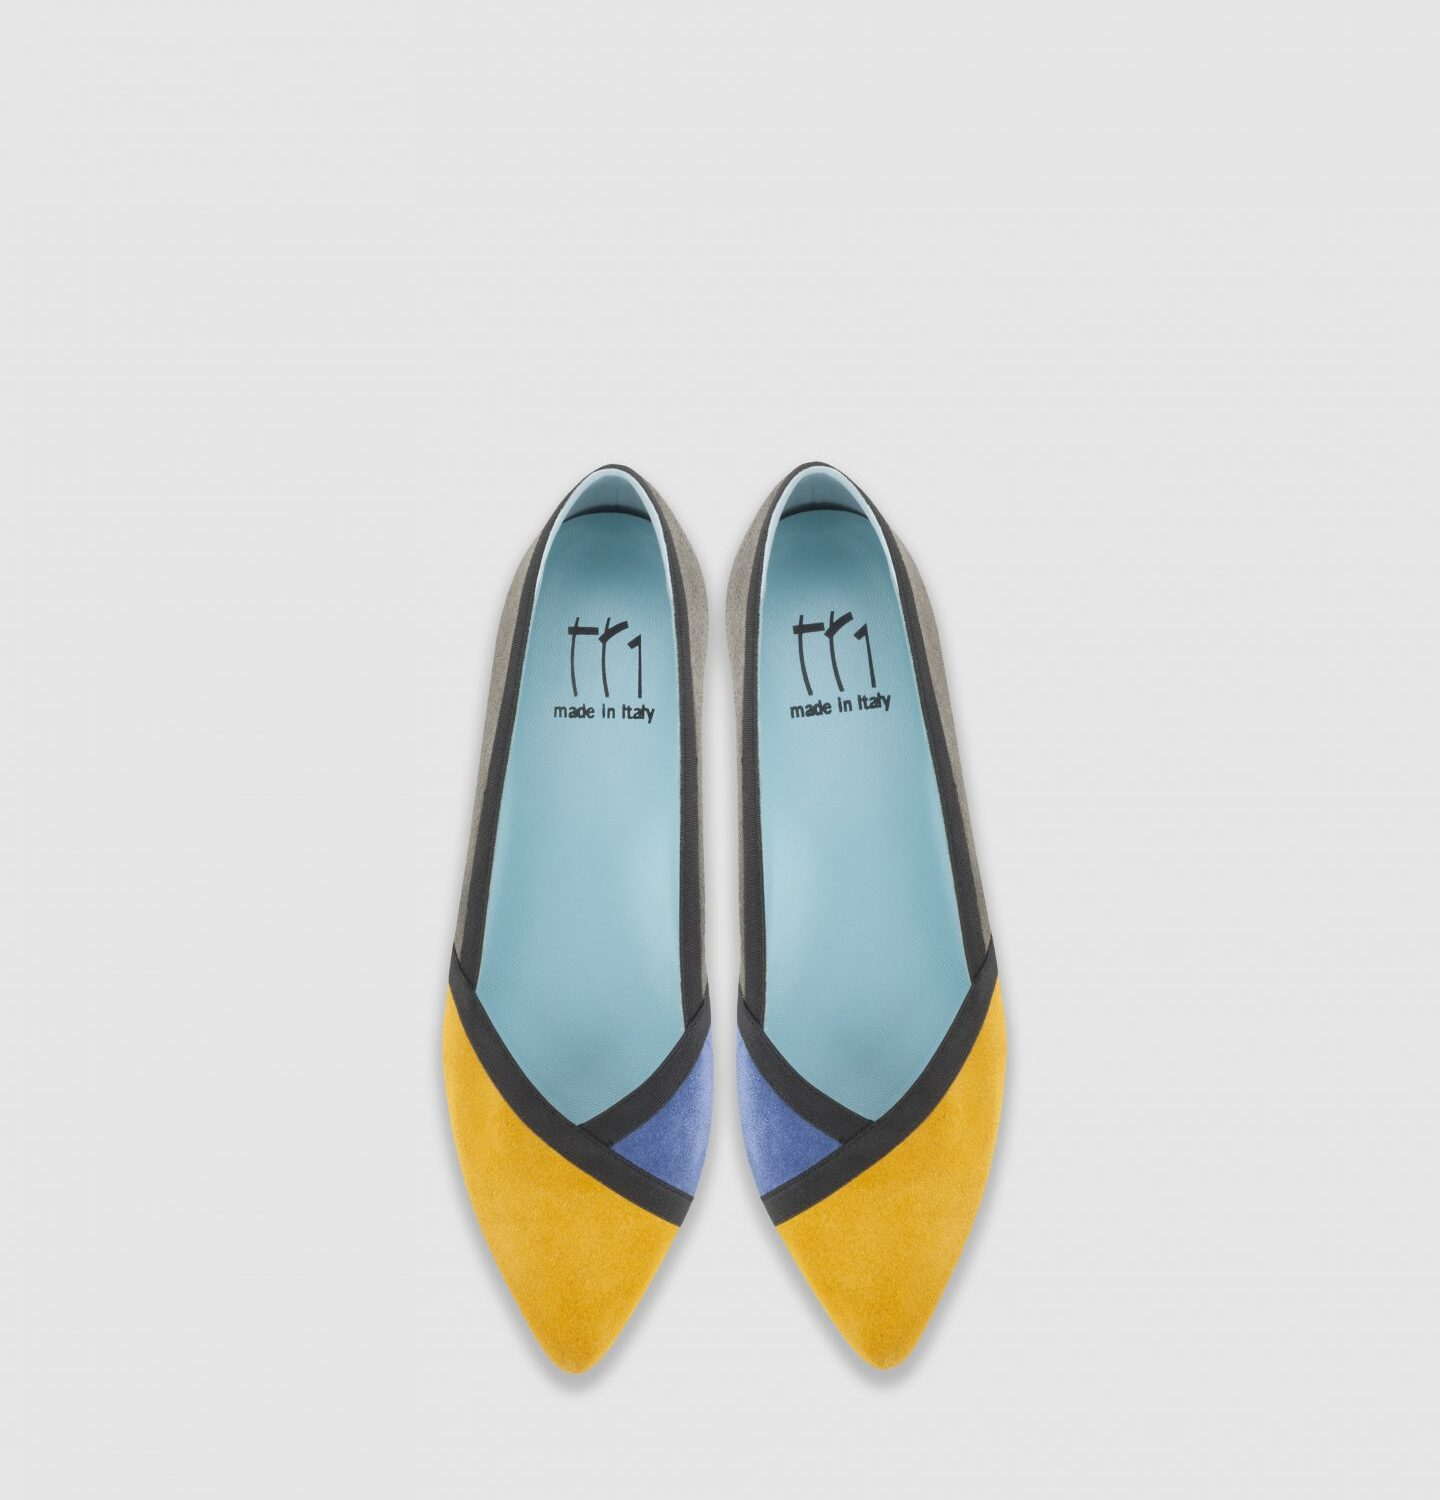 Mosaic - Heel height: 15 mm - Item code: A006M - Made in Italy